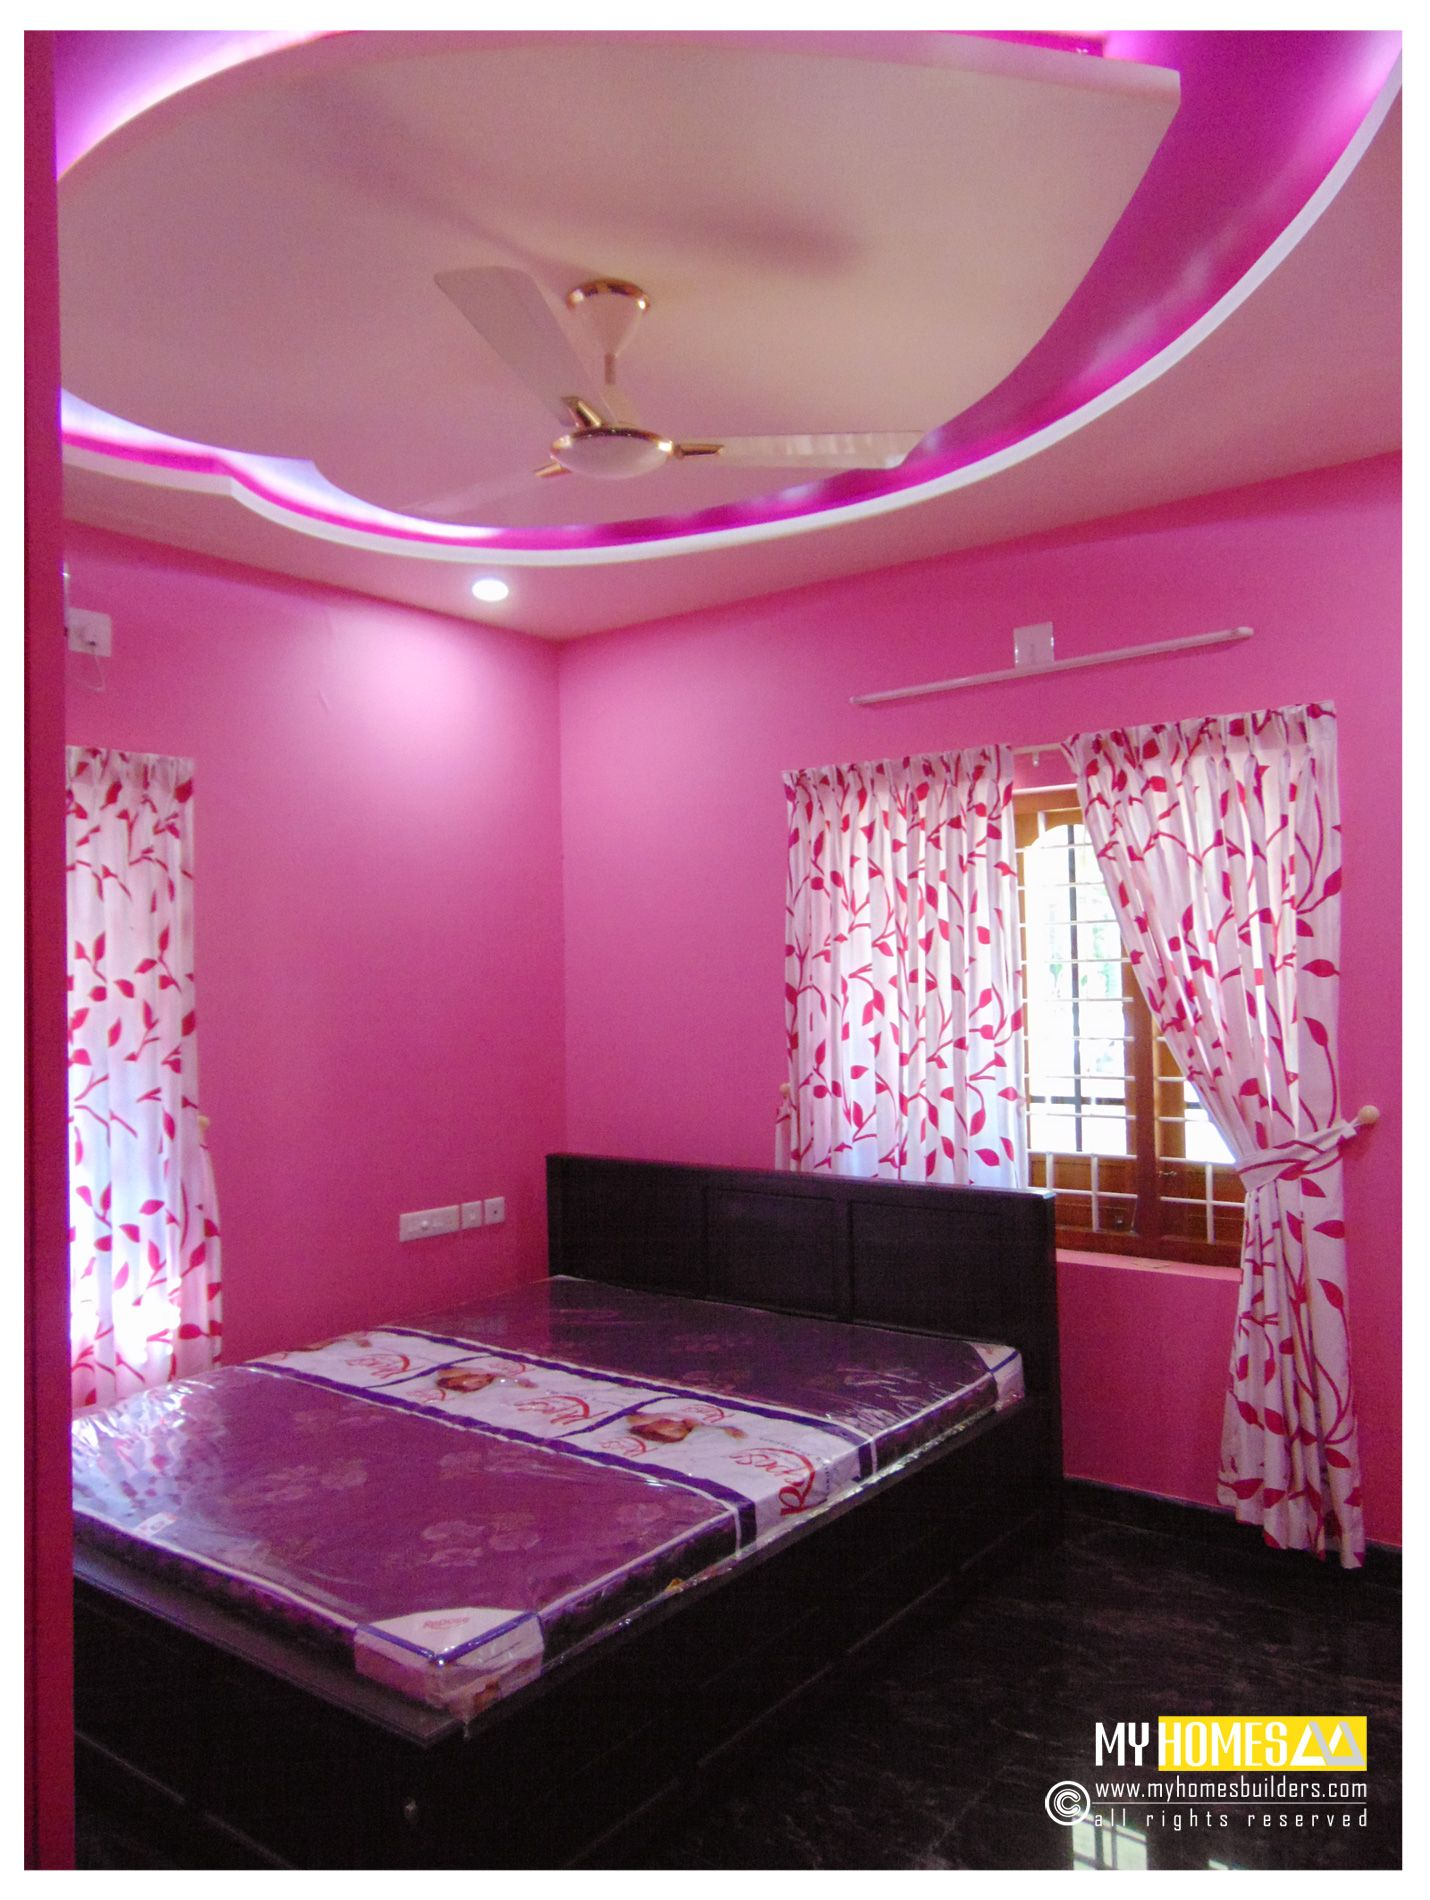 Kerala bedroom interior designs best bed room interior for Best interior designs for bedroom